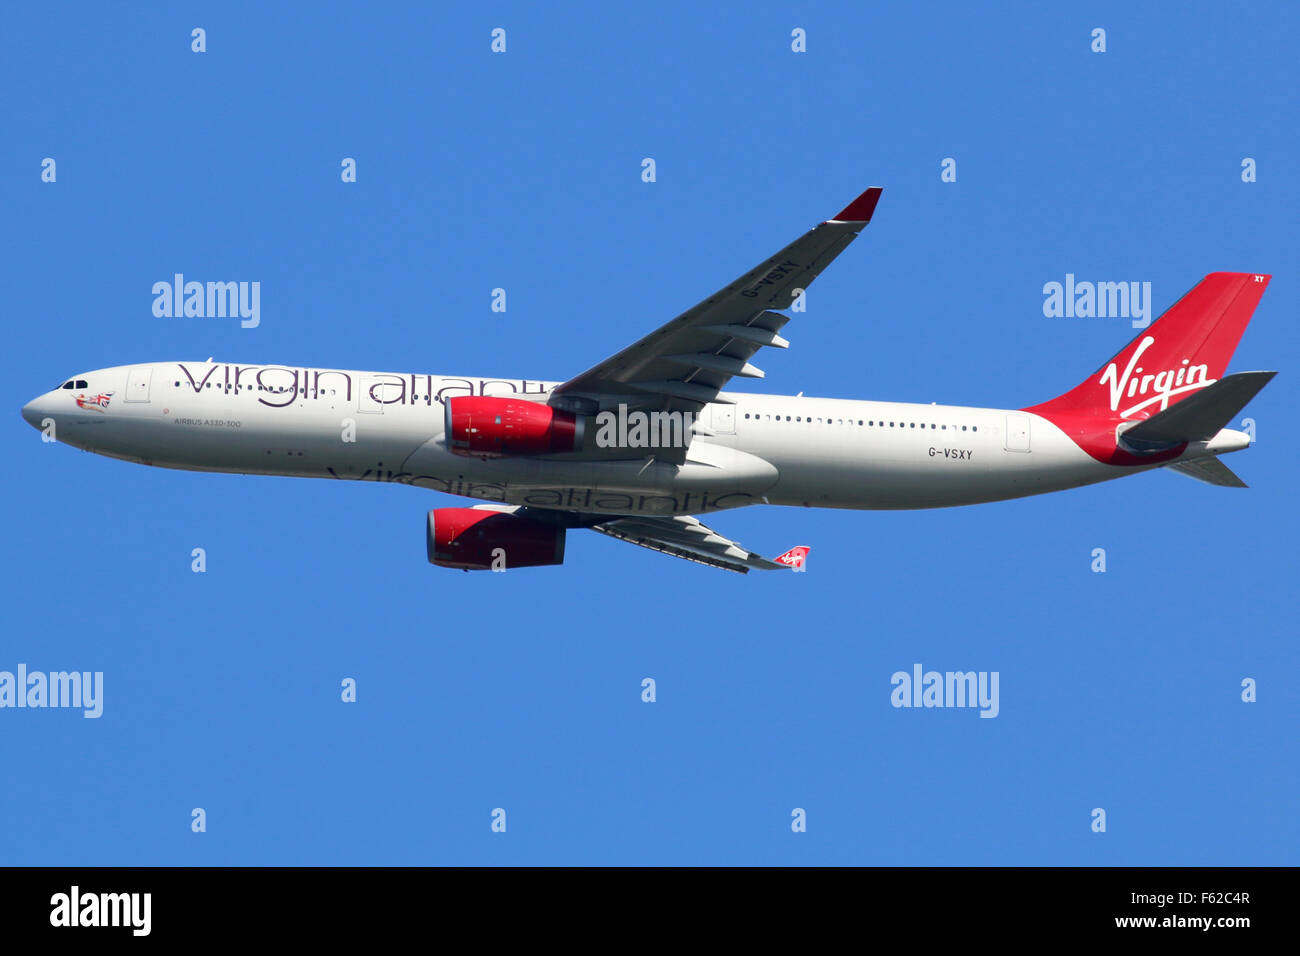 London Heathrow, United Kingdom - August 28, 2015: A Virgin Atlantic Airbus A330-300 with the registration G-VSXY - Stock Image